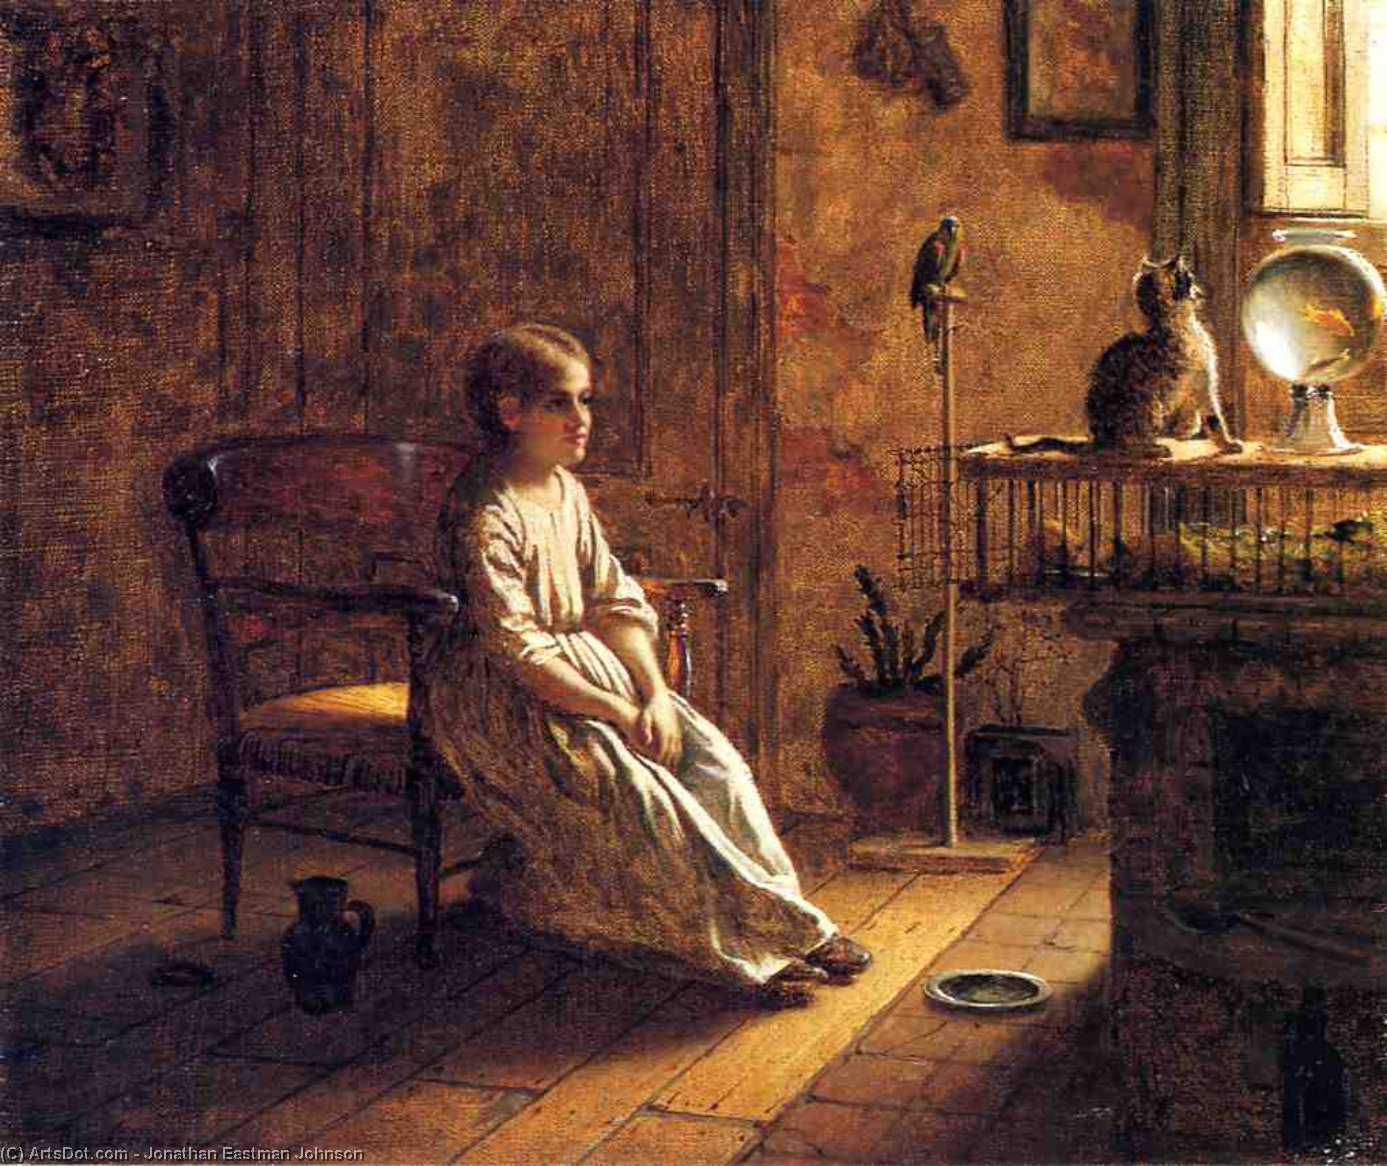 Un Child's Serraglio, olio su tela di Jonathan Eastman Johnson (1824-1906, United Kingdom)